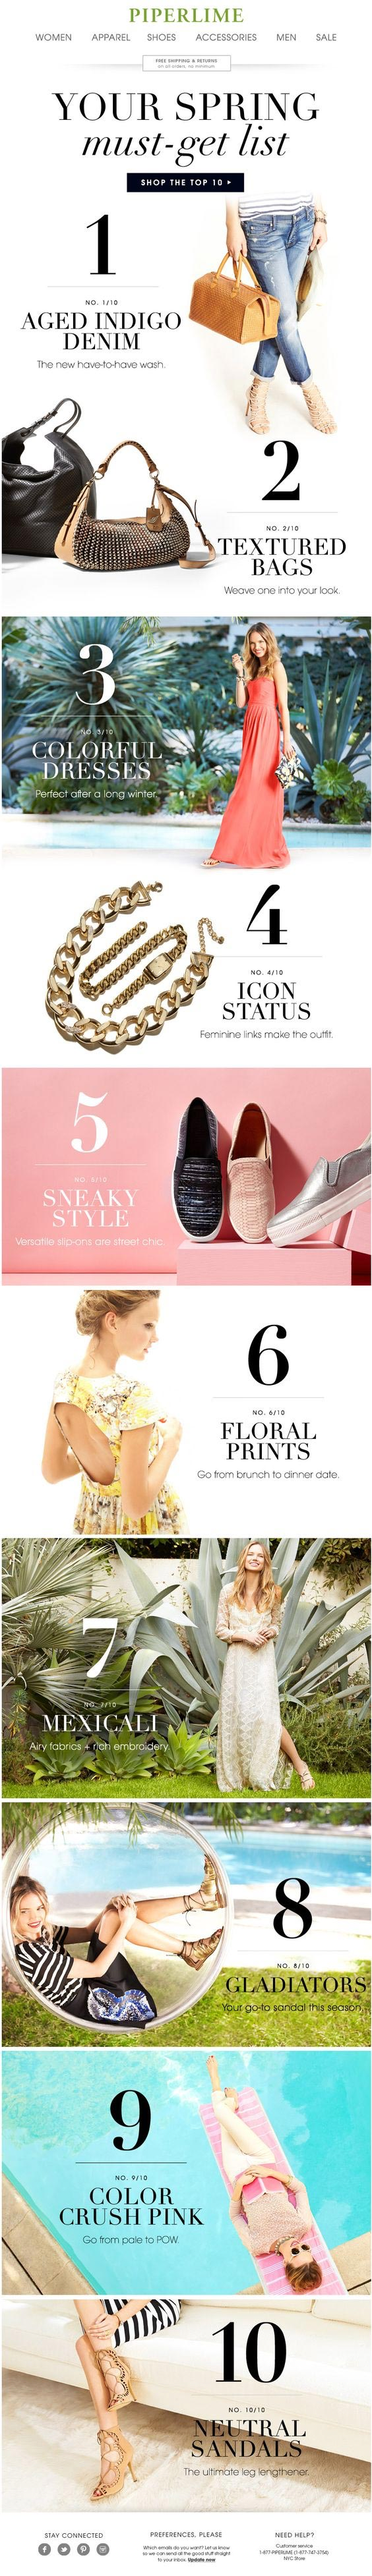 Piperlime: Spring Must-Get List Email